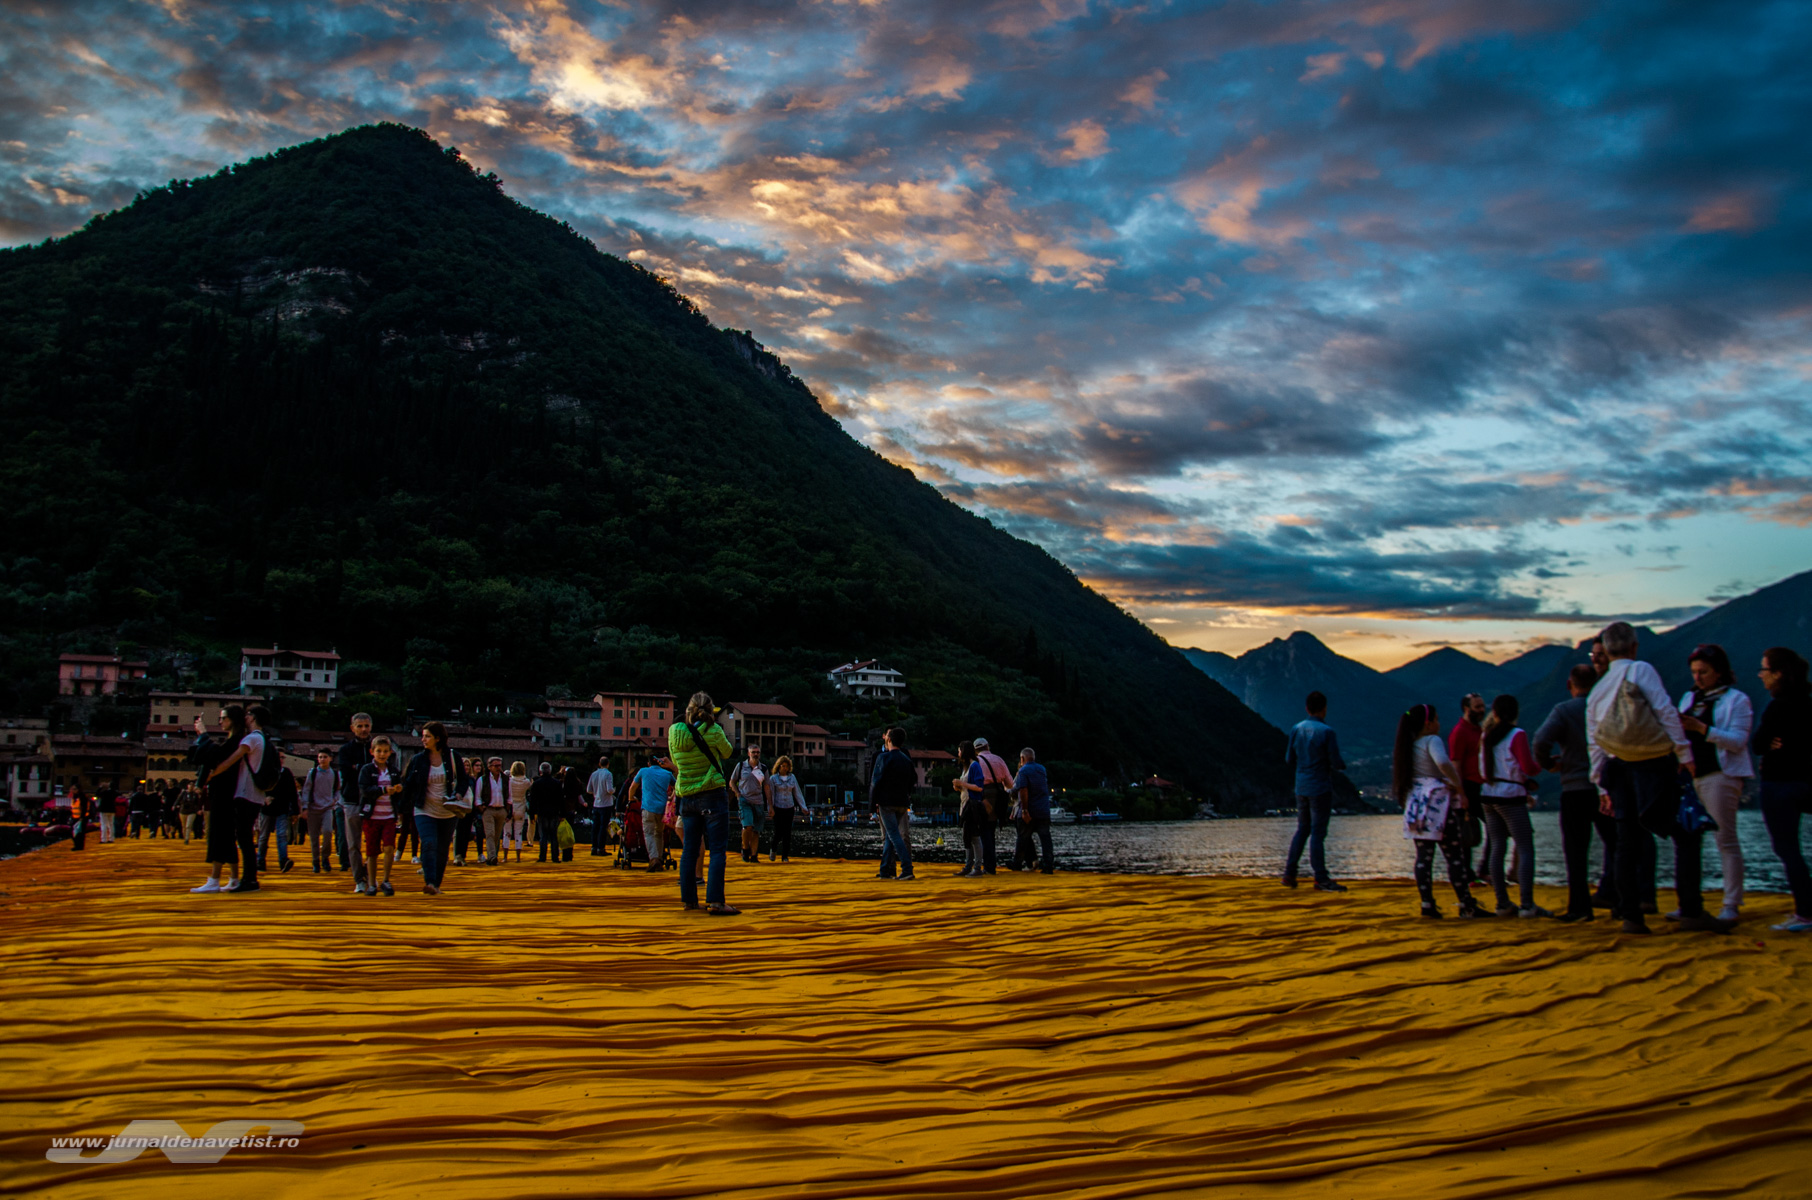 The Floating Piers 7970